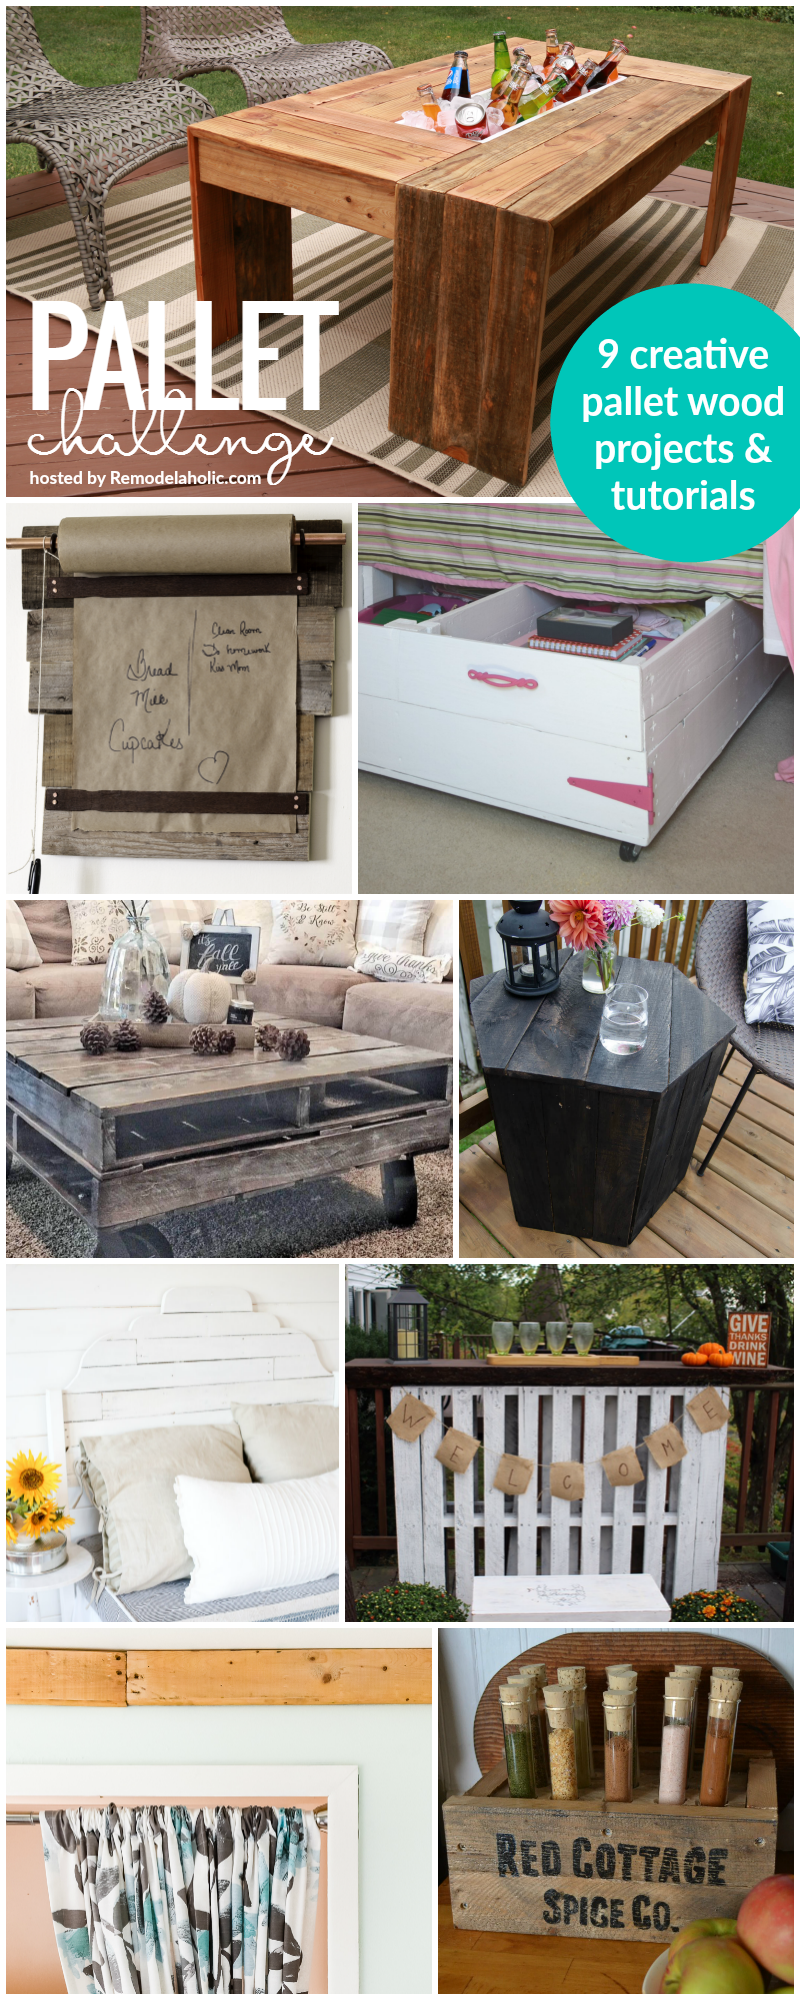 So many great ideas! i can't believe these are all made out of pallets.